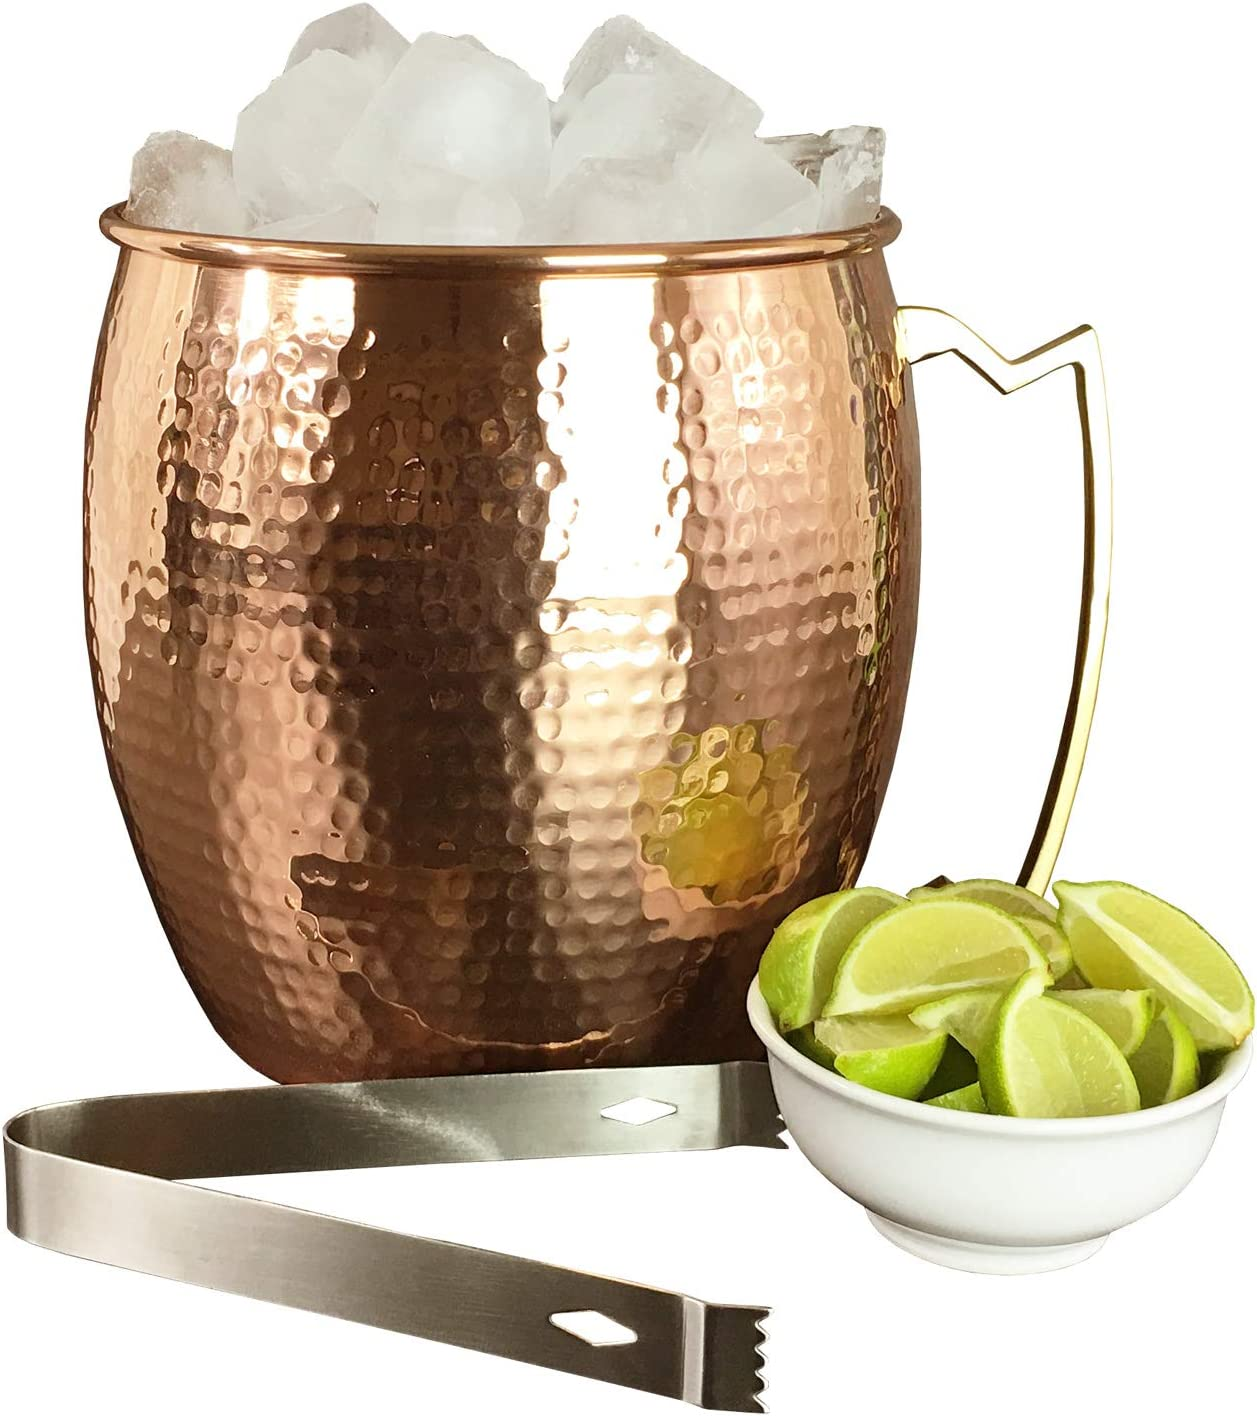 Pure Hammered Copper Ice Bucket with Tongs - 1.3 Gallon Champagne and Wine Bucket Cooler - 5 Quart Ice Buckets for Parties by Lifestyle Banquet